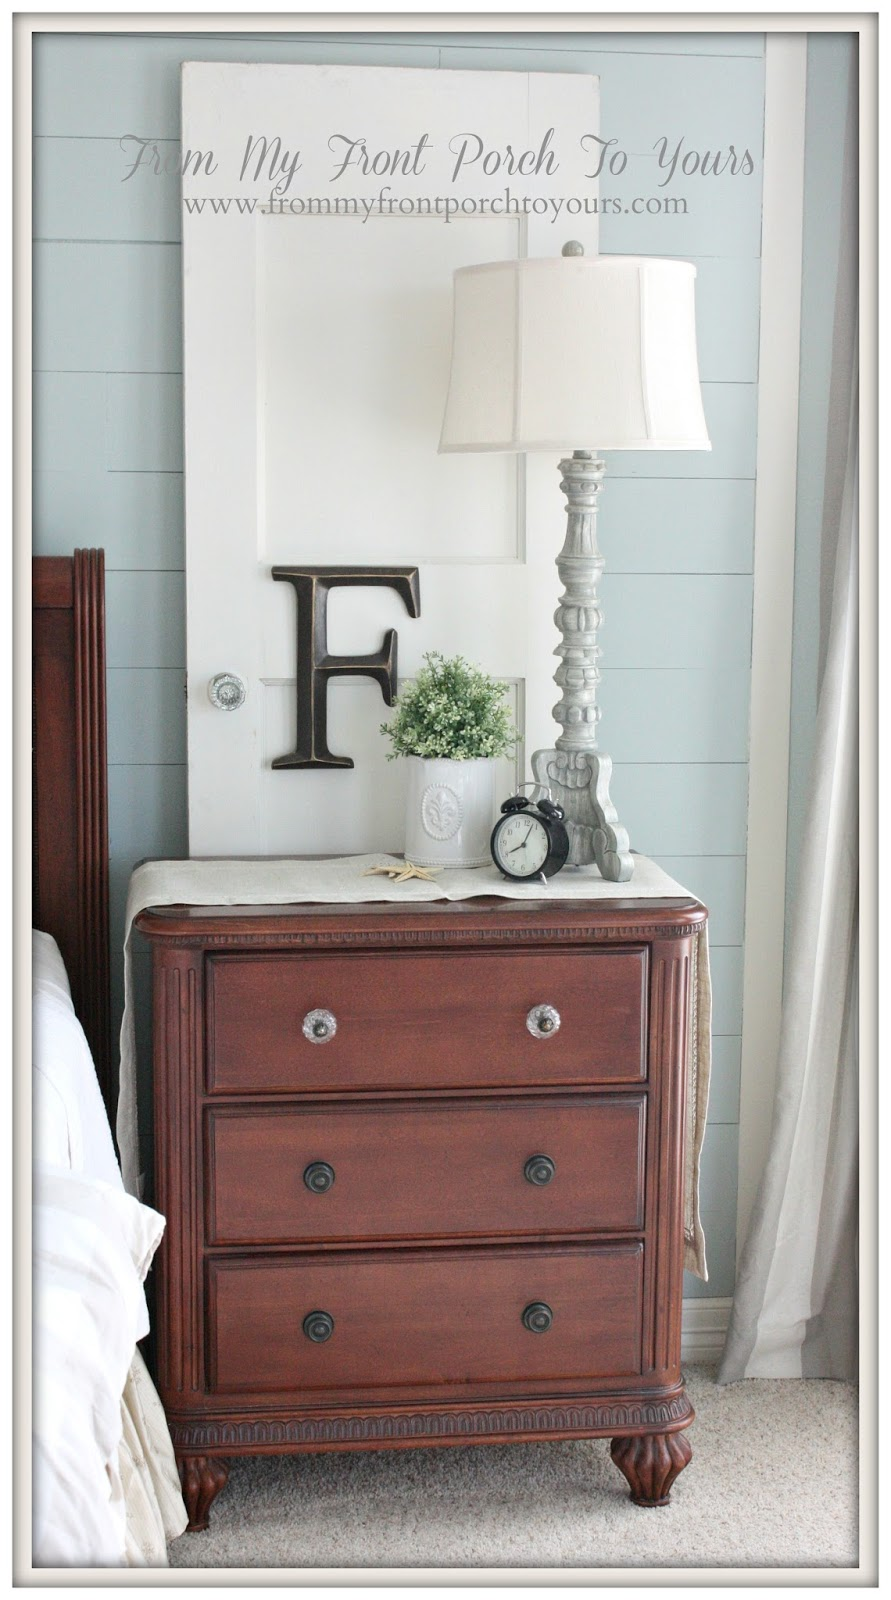 From My Front Porch To Yours- Inexpensive Details- Hobby Lobby Glass Knobs